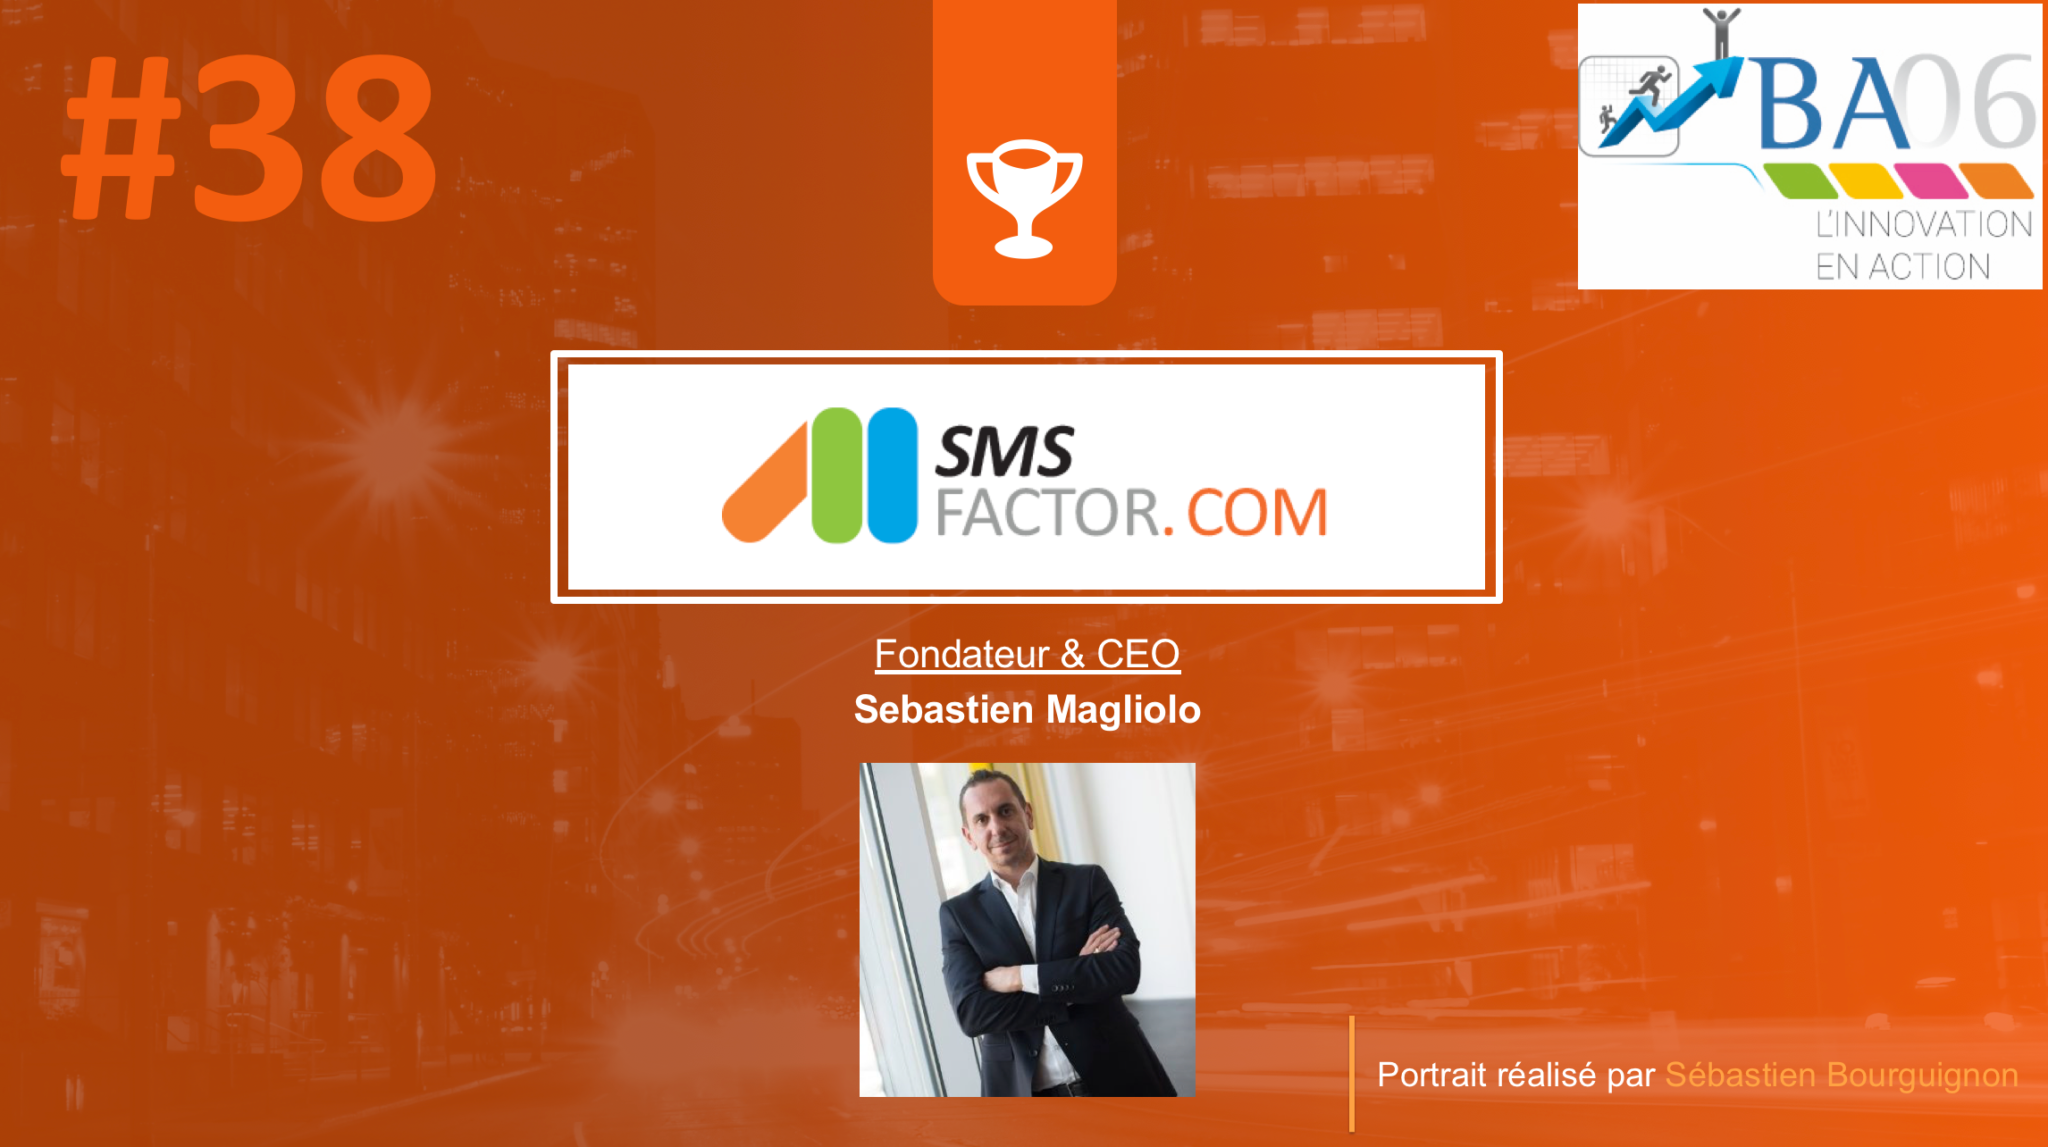 smsfactor